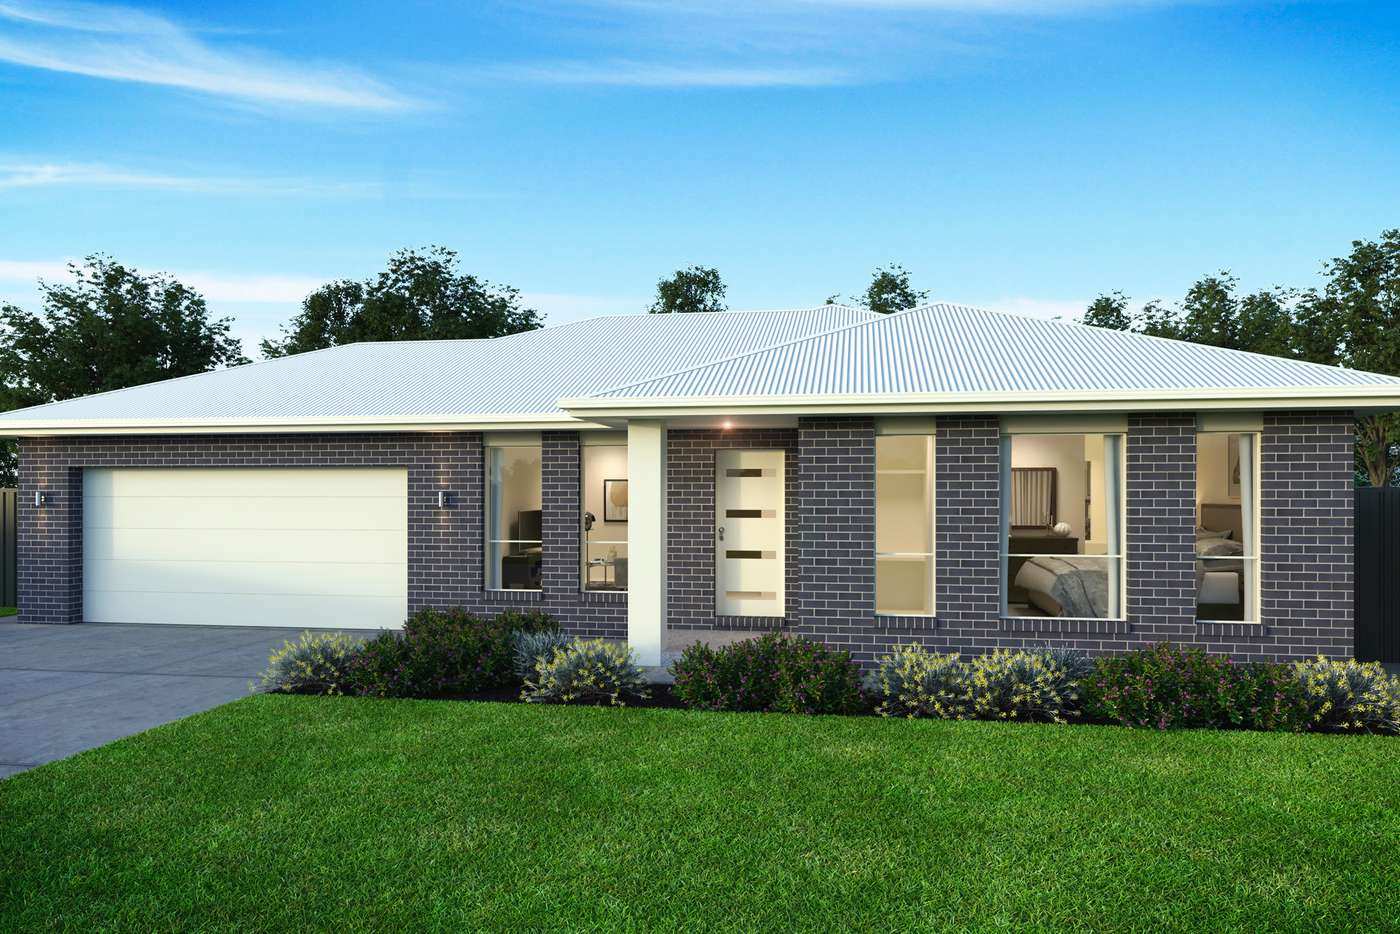 Main view of Homely house listing, 3 Kilkenny Avenue, Mudgee NSW 2850